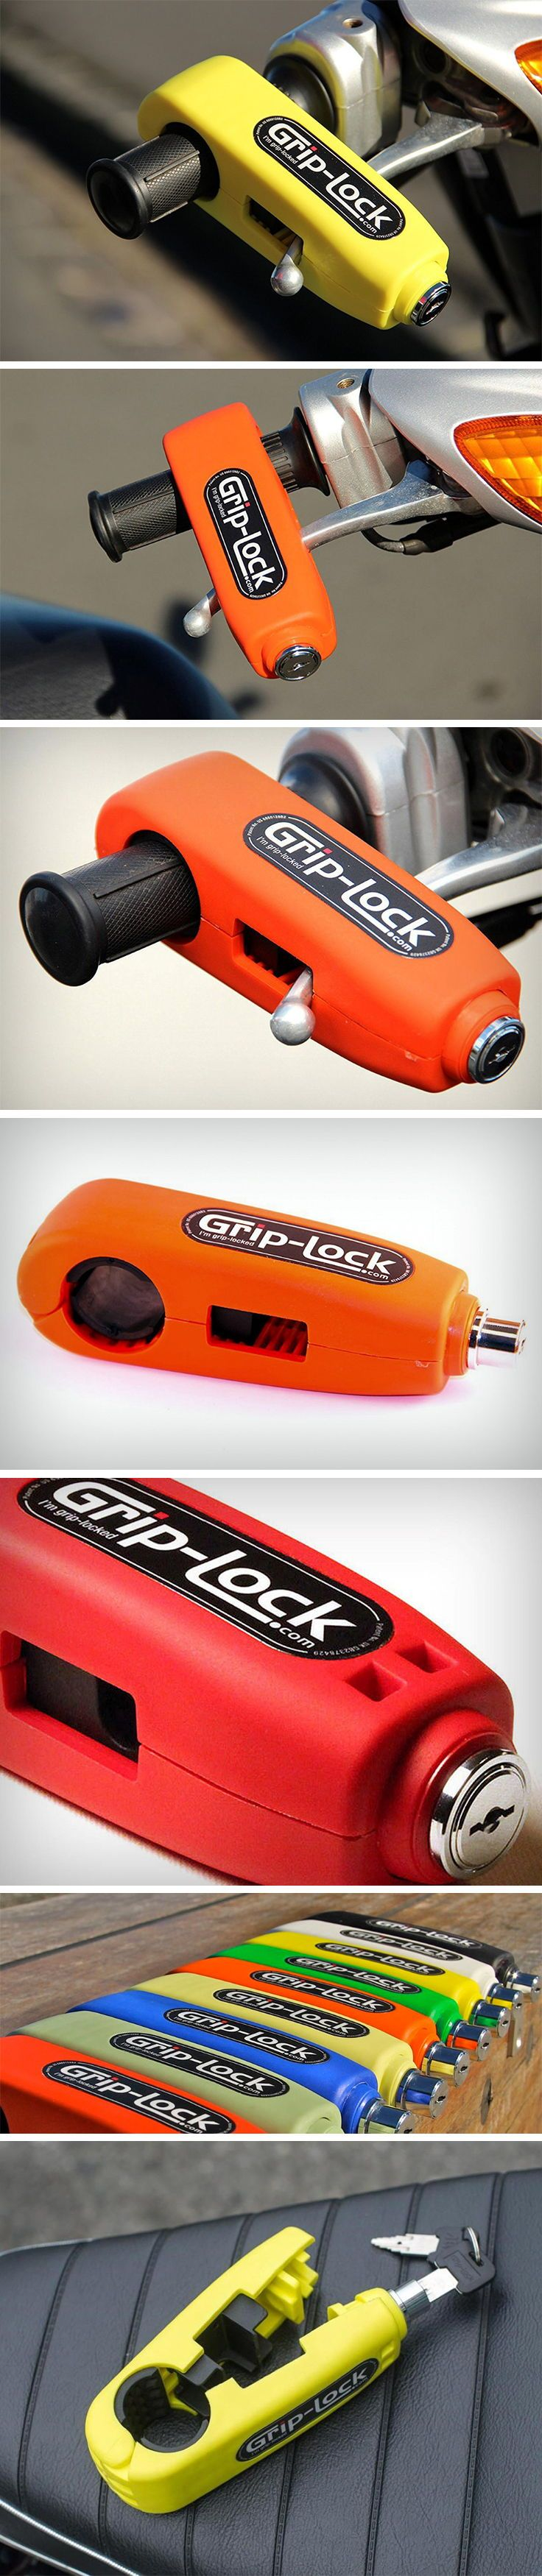 This is the Grip-lock. It's basically a physical barrier that makes motorcycle theft a literal pain in the a**. It snaps around your bike throttle and your brake stick in a rather inconspicuous manner, and can only be opened using a key. The Grip-lock's purpose is two-fold. A. Preventing the throttle from being turned, so you can't really accelerate or drive the motorcycle, and B. it presses down on your brake too, so you can't really wheel the motorcycle away too. BUY NOW!